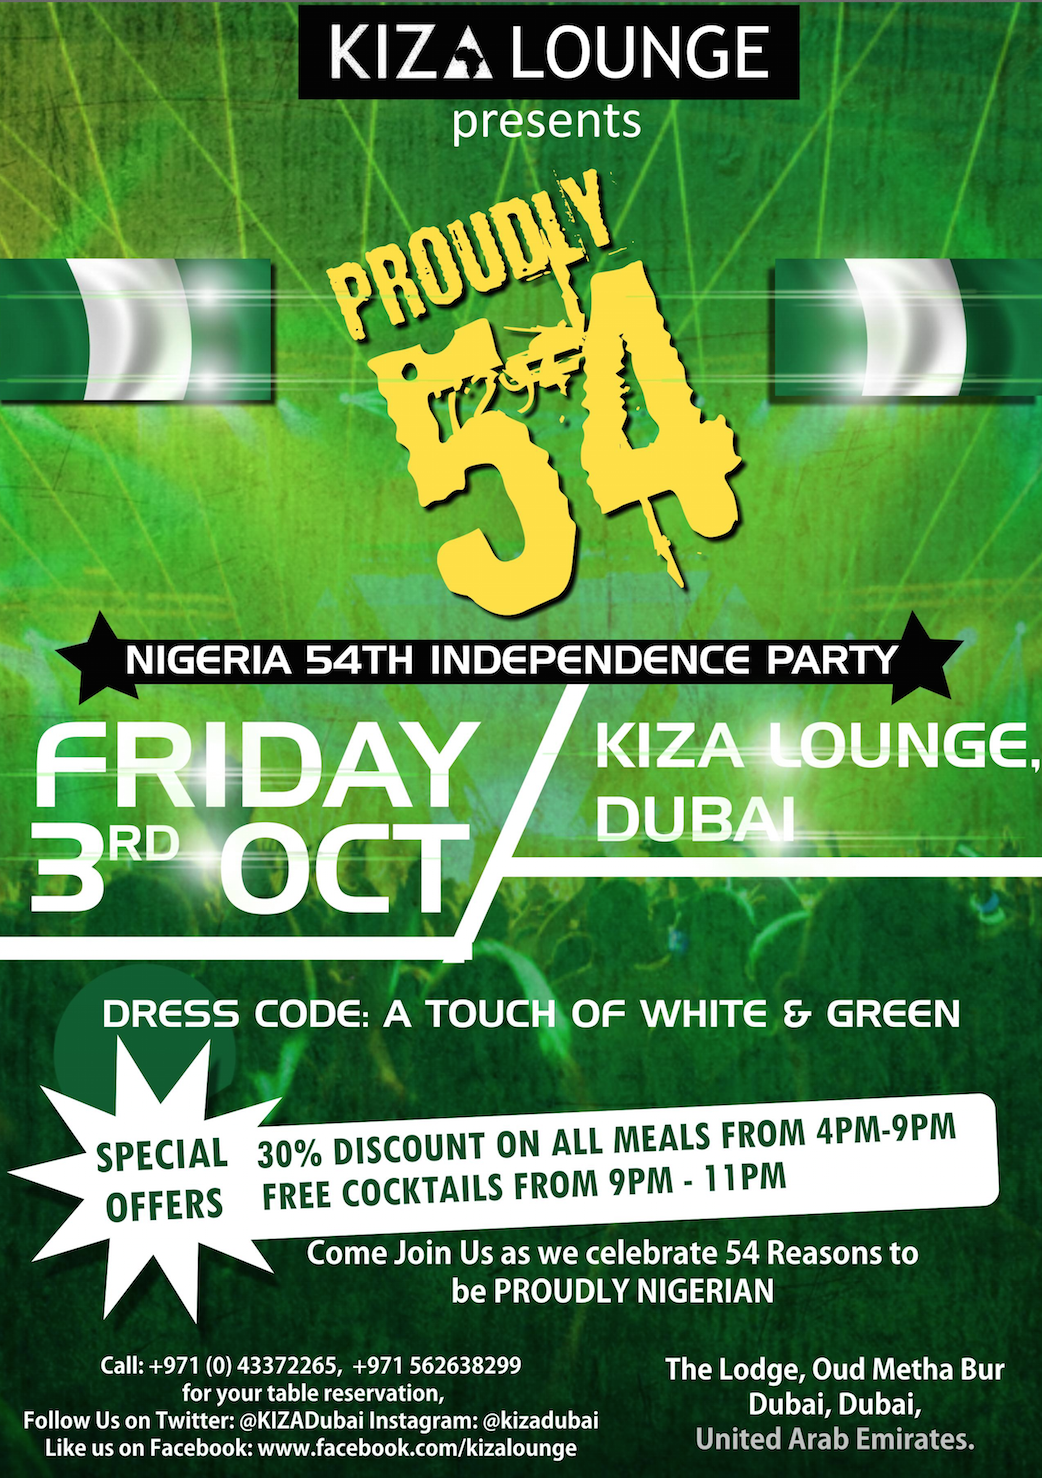 Rest well tonight, THE BEAT FRIDAYS by #Hennessey is on tomorrow, celebrating Nigeria's Independence Day with a Massive party, 30% OFF ON ALL MEALS FROM 4pm – 9pm & later FREE COCKTAILS FROM 9PM – 11PM, and the best mix of music by @vjtribe @djkulcha  #doroparty #turnup #Nigeria54 #kizaloungeandrestaurant #kizadubai #kiza #thebeatfridays #dorodiva #rockstar #dubai #dxbsociety #partyhard #myafrica